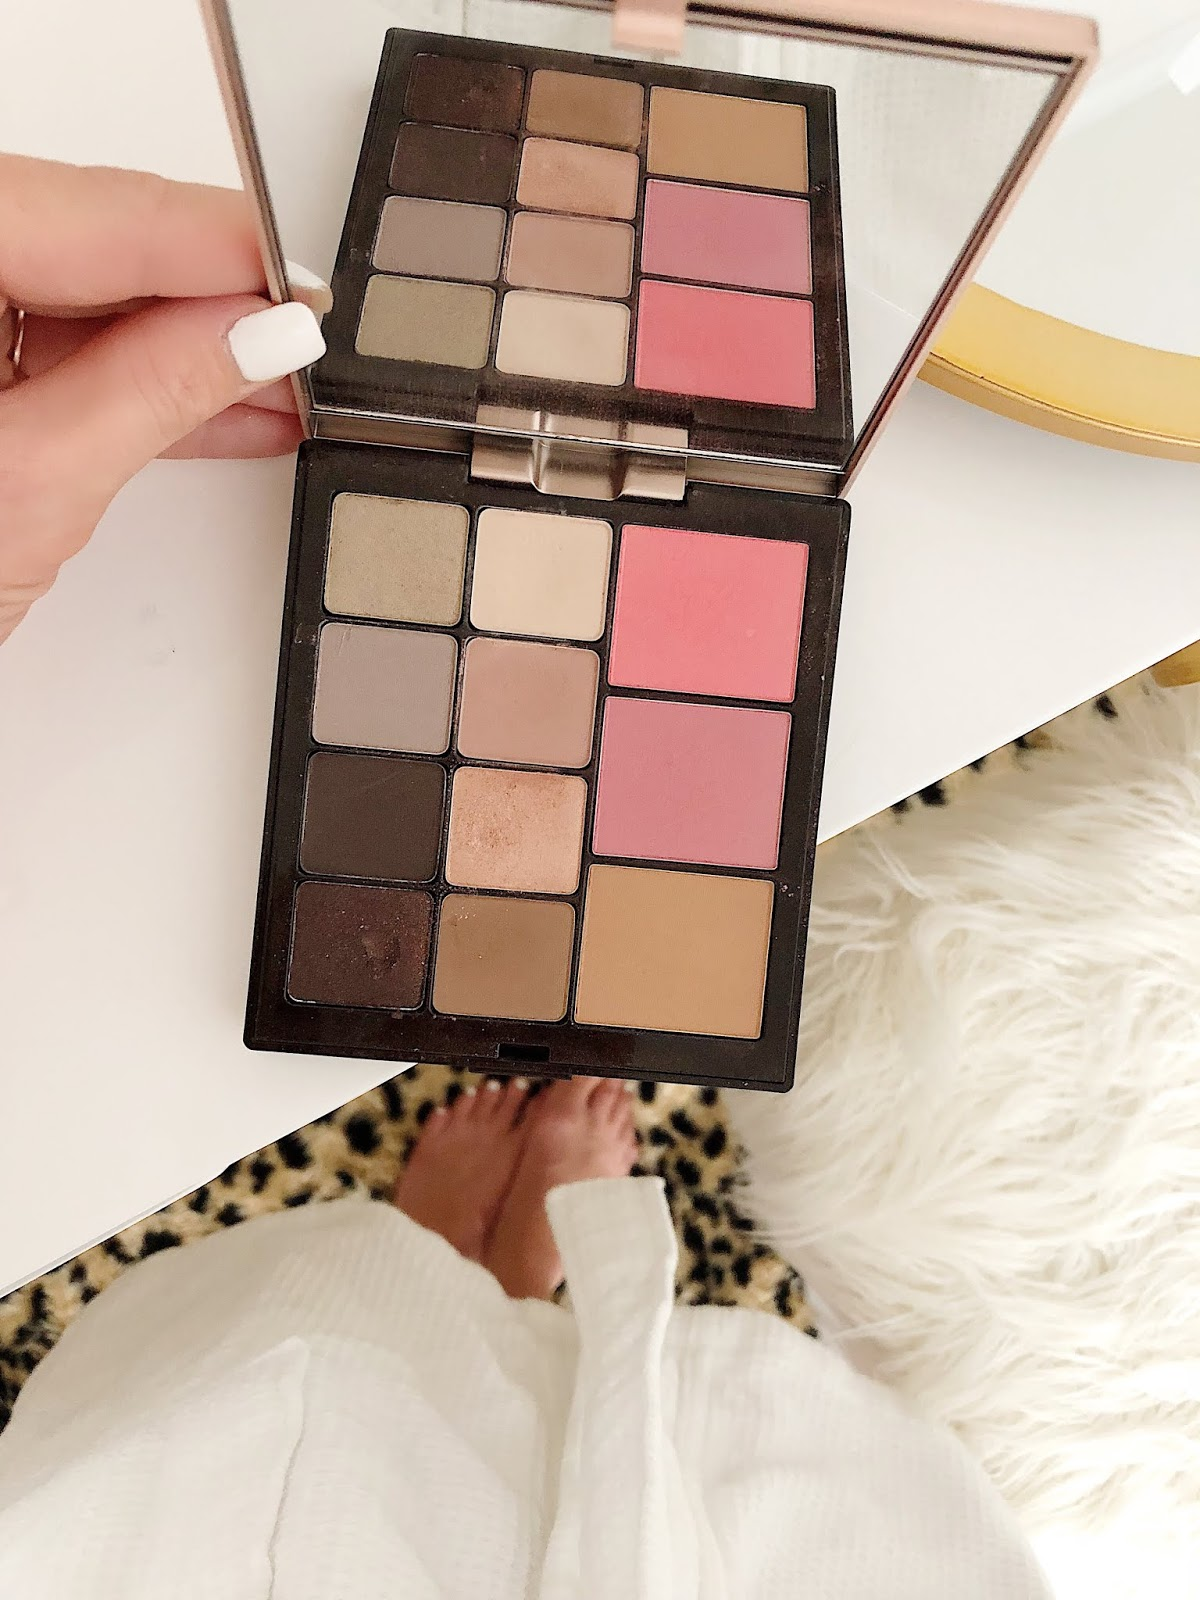 Nordstrom Anniversary Sale 2018 Laura Mercier Eye and Cheek Palette - Something Delightful Blog